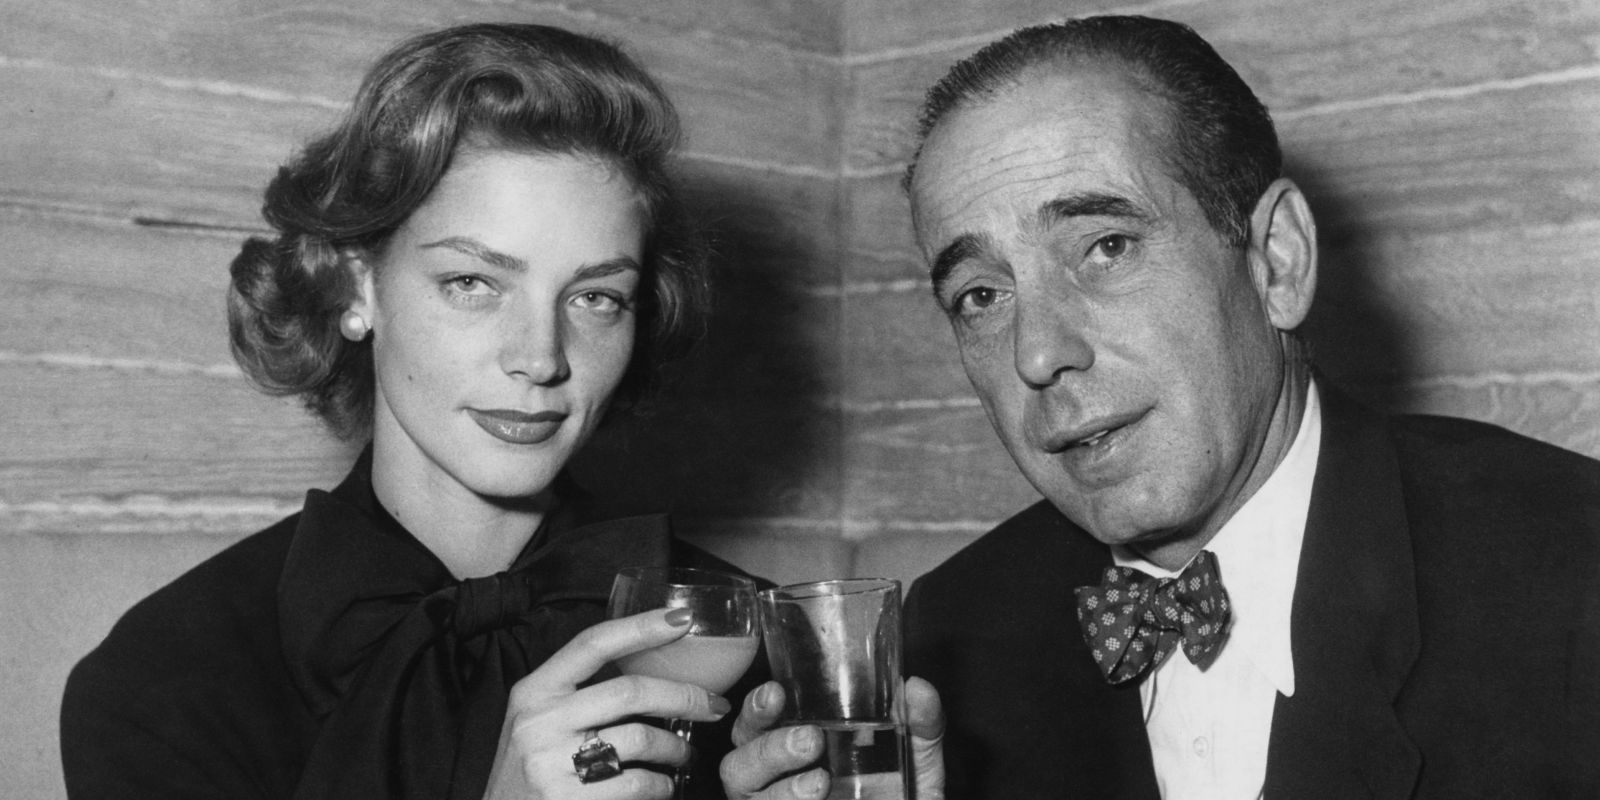 Humphrey bogart and lauren bacall 39 s marriage bogie and for Lauren bacall married to humphrey bogart